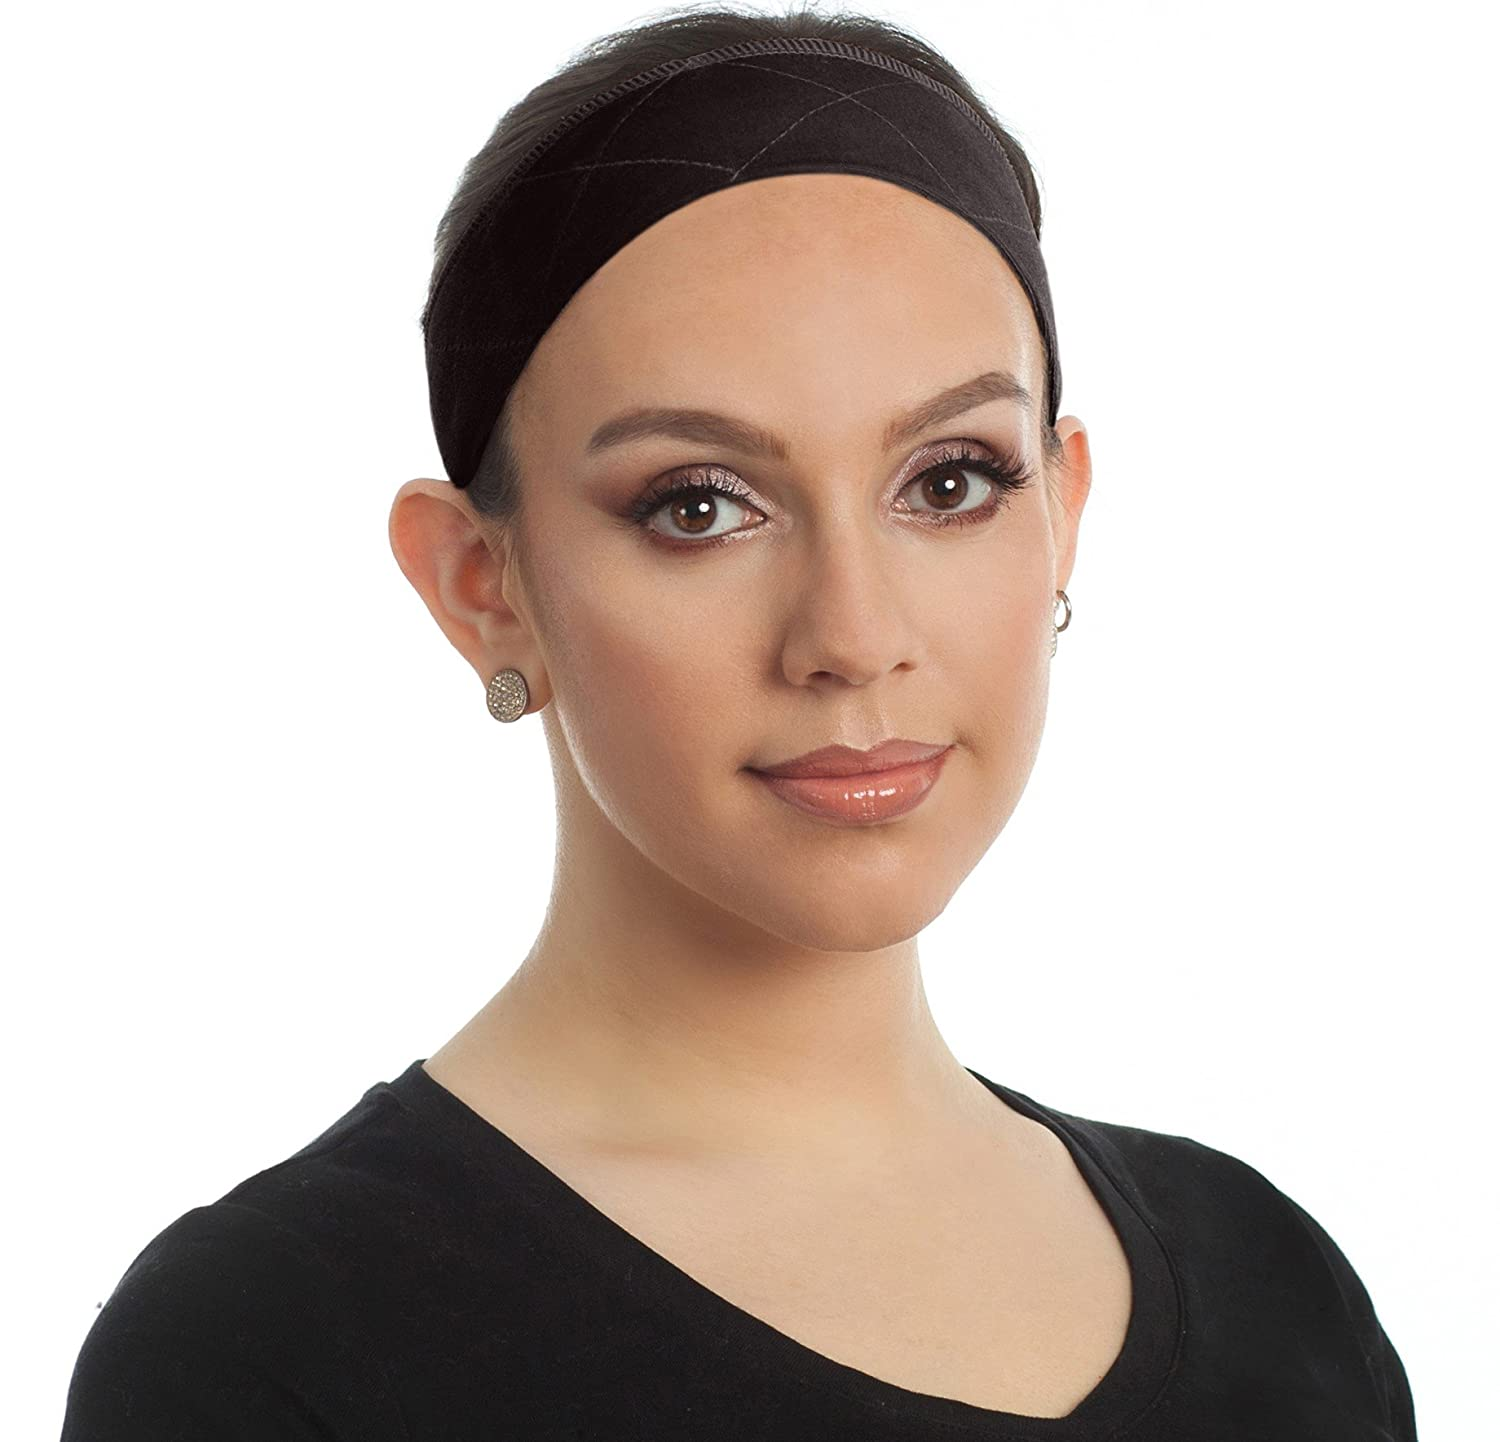 Beaugee Wig Grip Headband, Bundle with Free Comb - Adjustable Comfort Head Hair Band for Women - Velvet Material - Velcro Closure - Non Slip, Keeps Wig Secured - Prevents Headaches & Hair Loss (Beige) B072ZBFYZ6